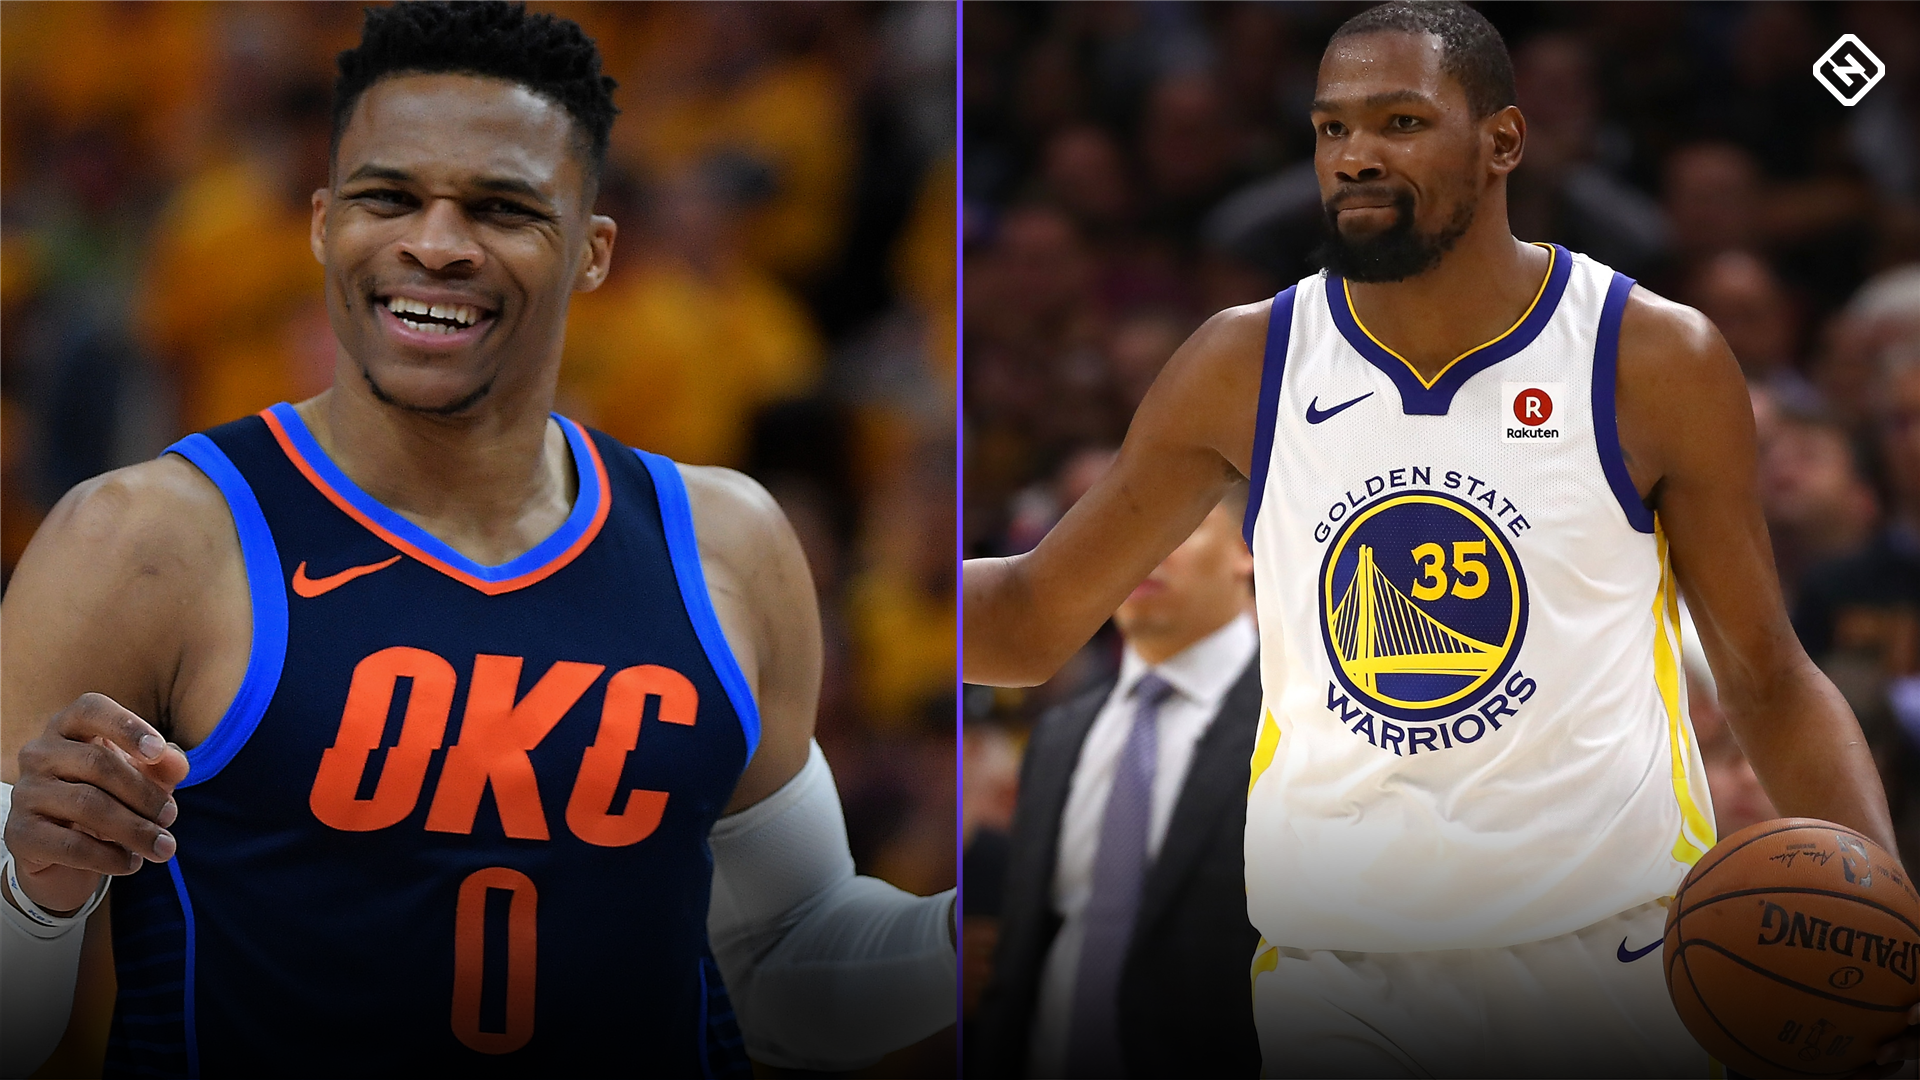 2018 Fantasy Basketball cheat sheet, rankings, sleepers, advice, team names, more